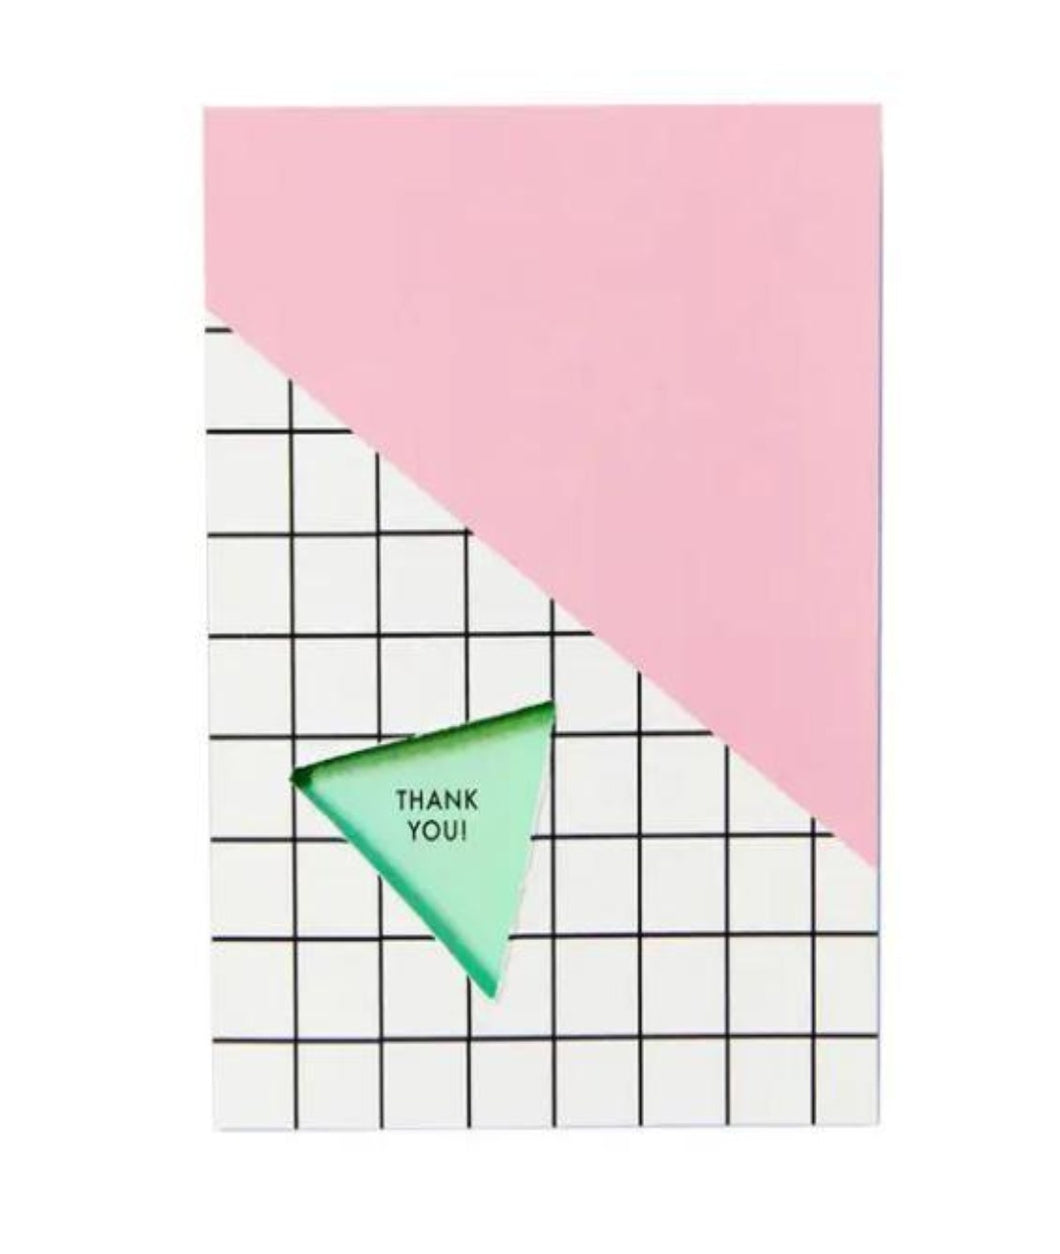 Pictured against a white background is a card that features a black and white grid pattern at the bottom and a light pink filler at the top. There is a mint colored triangle with the words